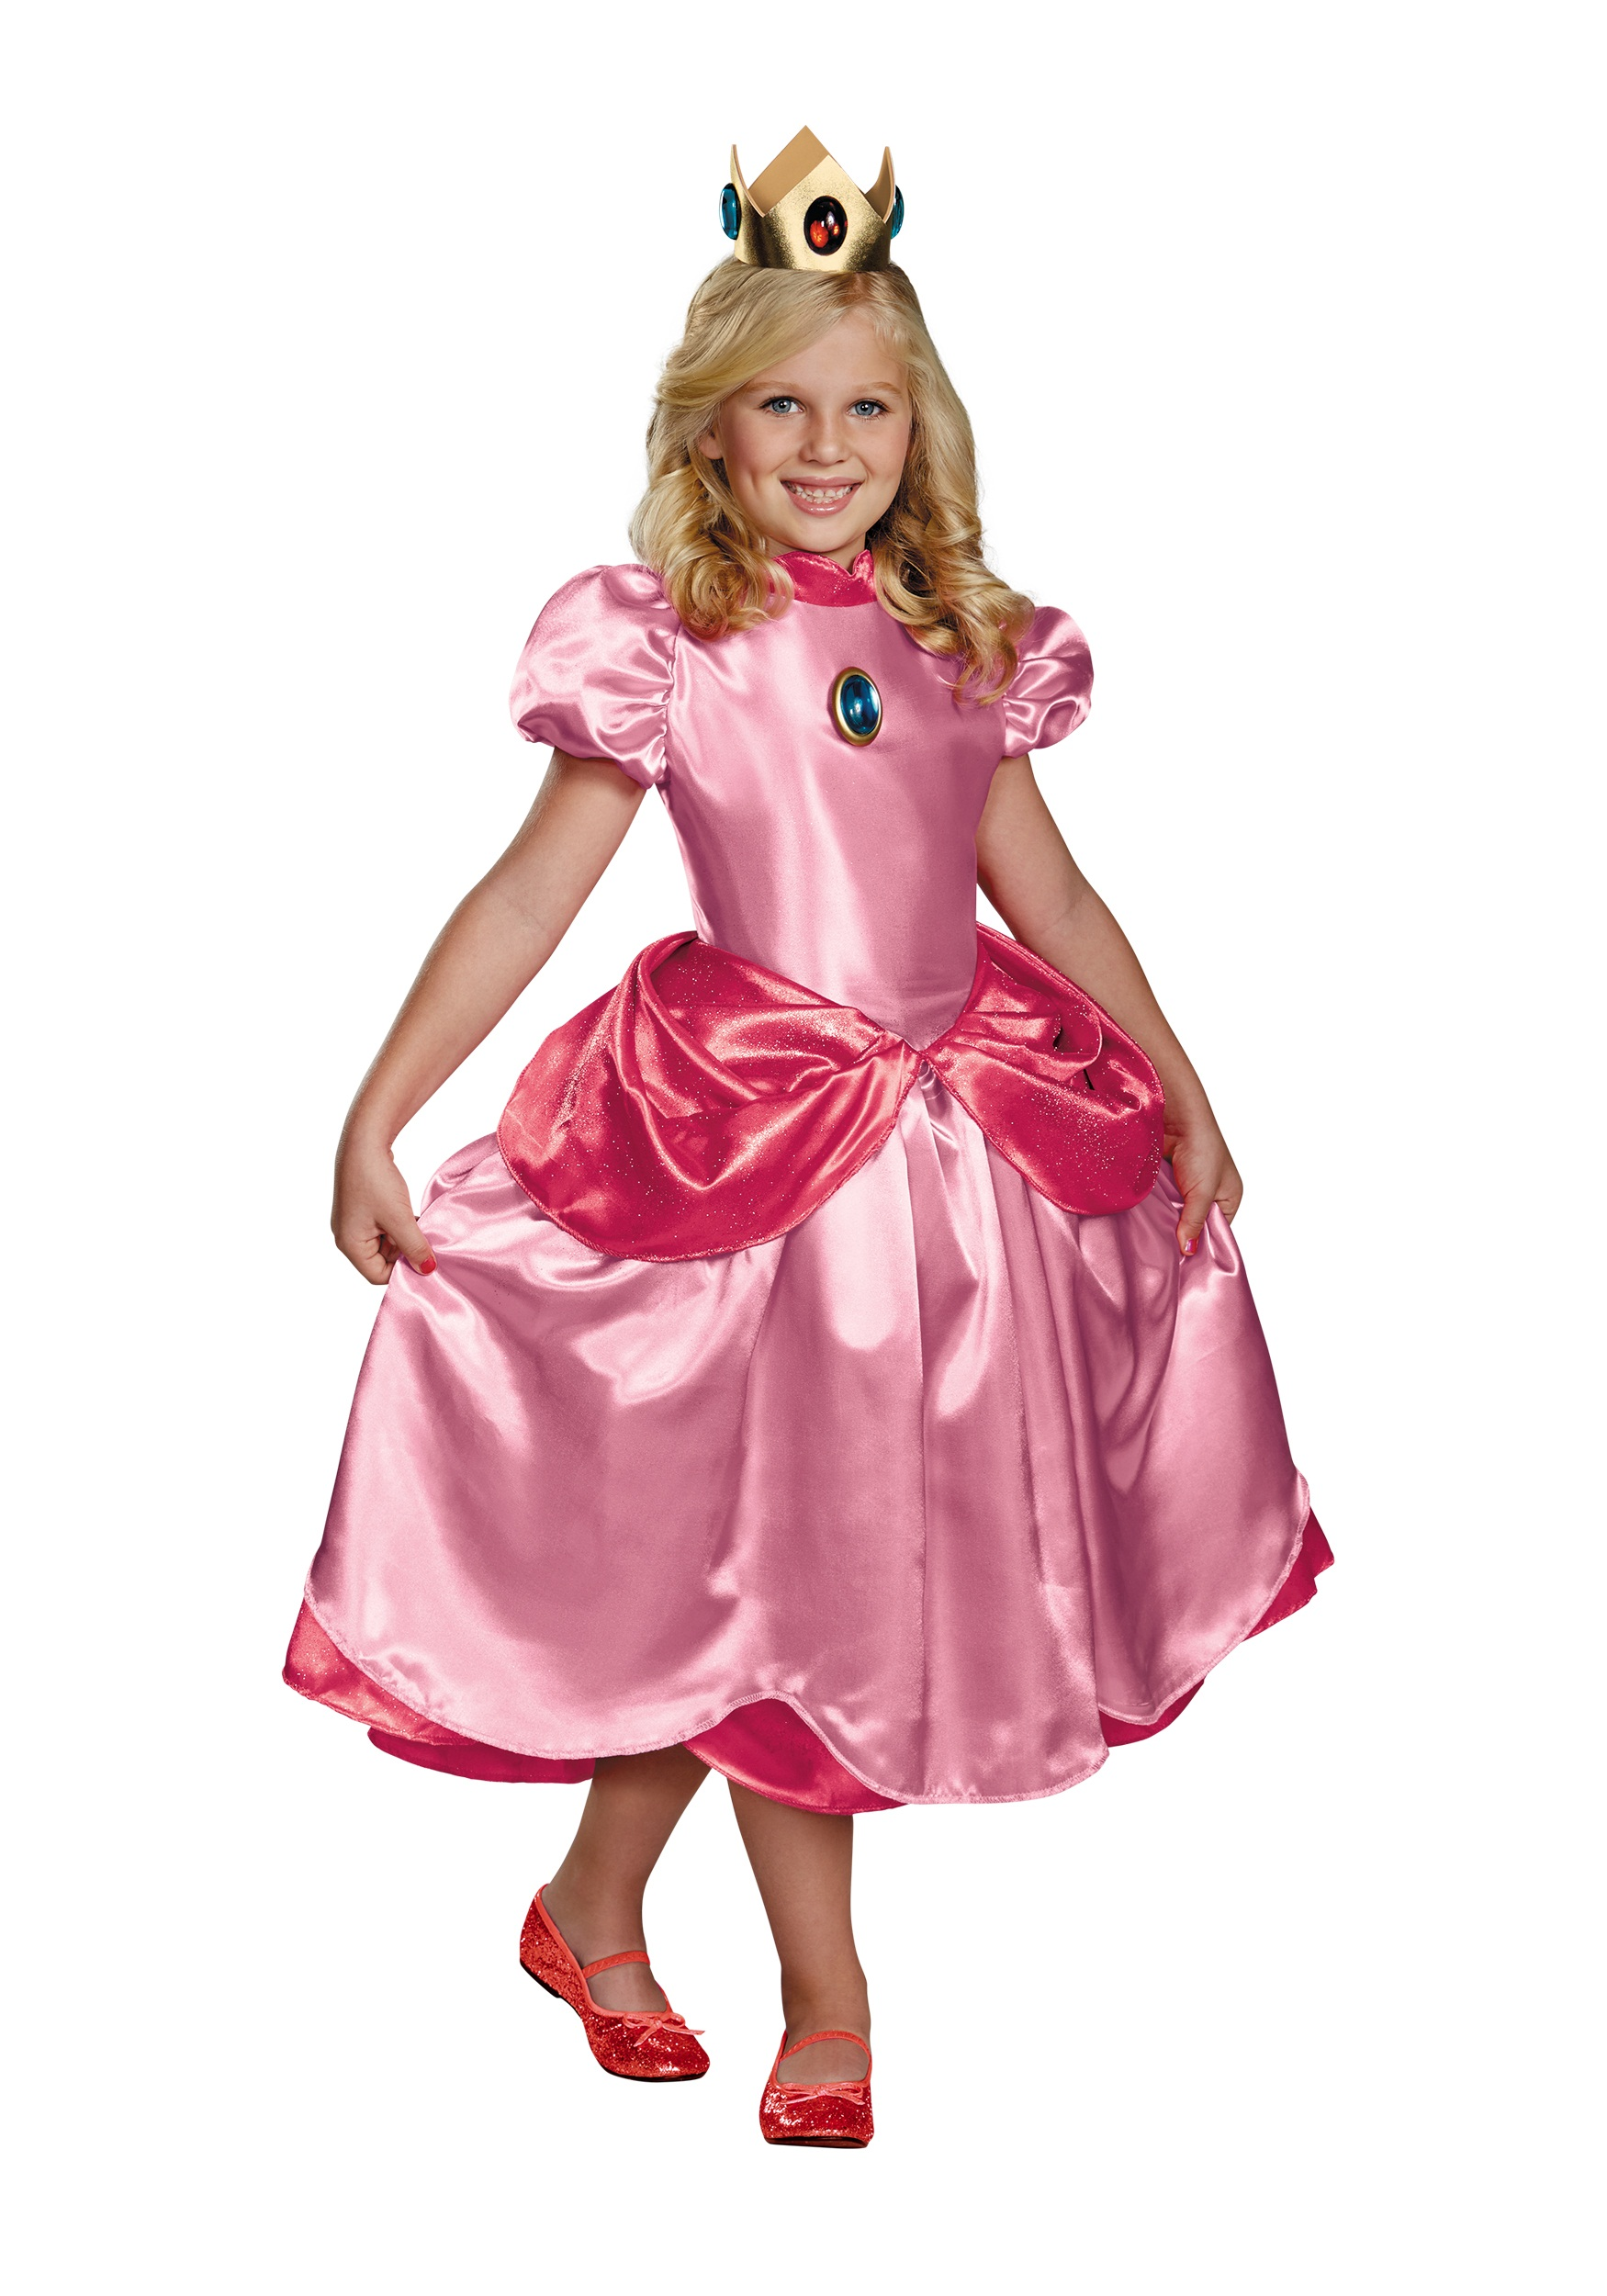 Girls Deluxe Princess Peach Costume  sc 1 st  Halloween Costumes & Super Mario Princess Peach Costumes - HalloweenCostumes.com